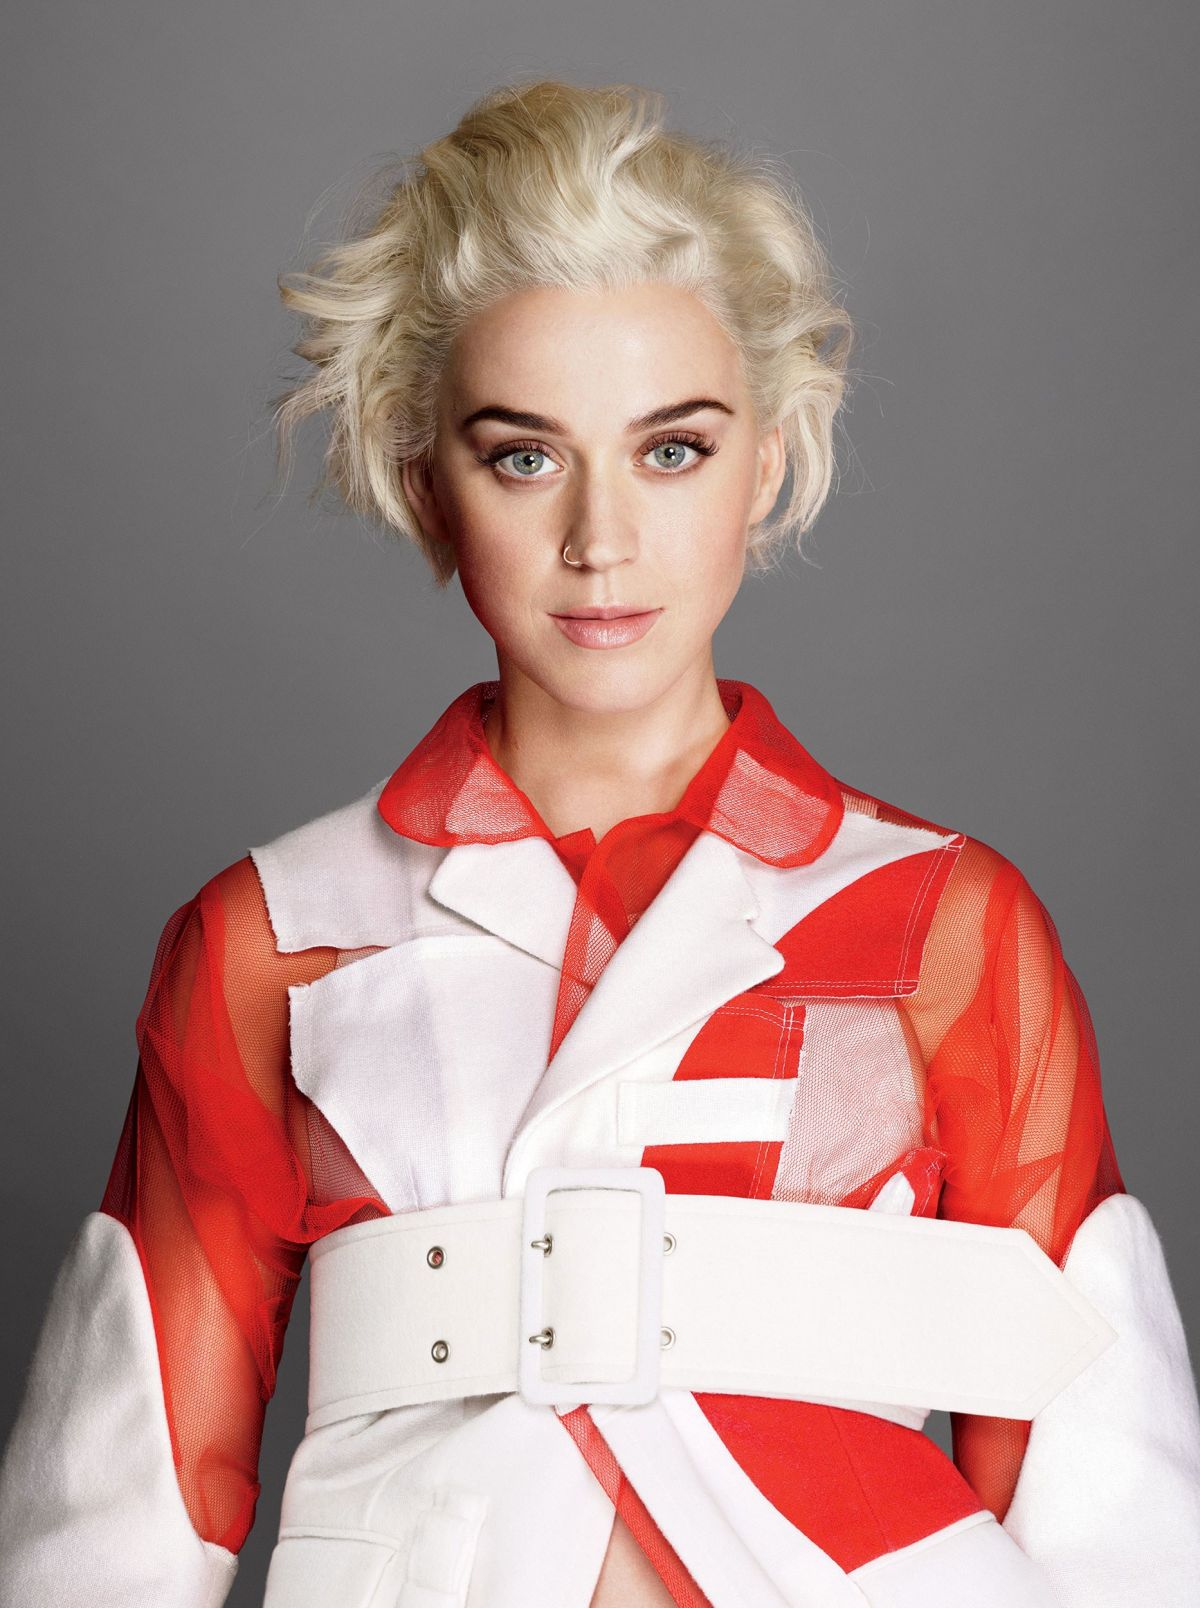 KATY PERRY in Vogue Magazine, May 2017